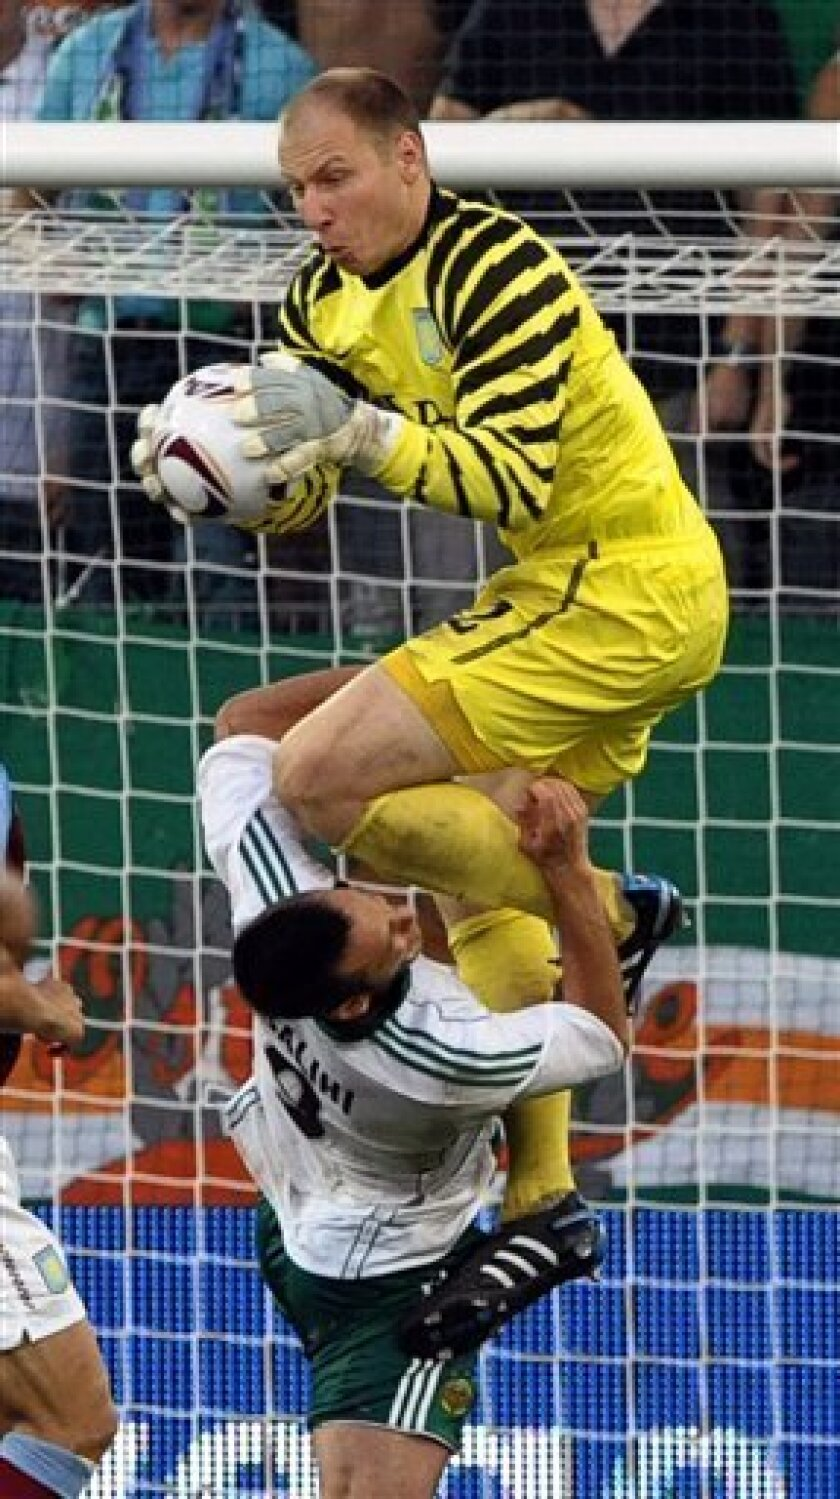 FILE - This is a Thursday, Aug. 19, 2010 file photo of Aston Villa's goalkeeper Brad Guzan as he grabs the ball from Rapid Vienna's Hamdi Salihi, during their Europa League play off round first leg soccer match in Vienna, Austria. American goalkeeper Brad Guzan has joined second-tier English side Hull on a one-month loan. The 26-year-old United States international is contracted to Premier League side Aston Villa but has been unable to oust fellow American Brad Friedel from the starting lineup. (AP Photo/dapd/Hans Punz, File)